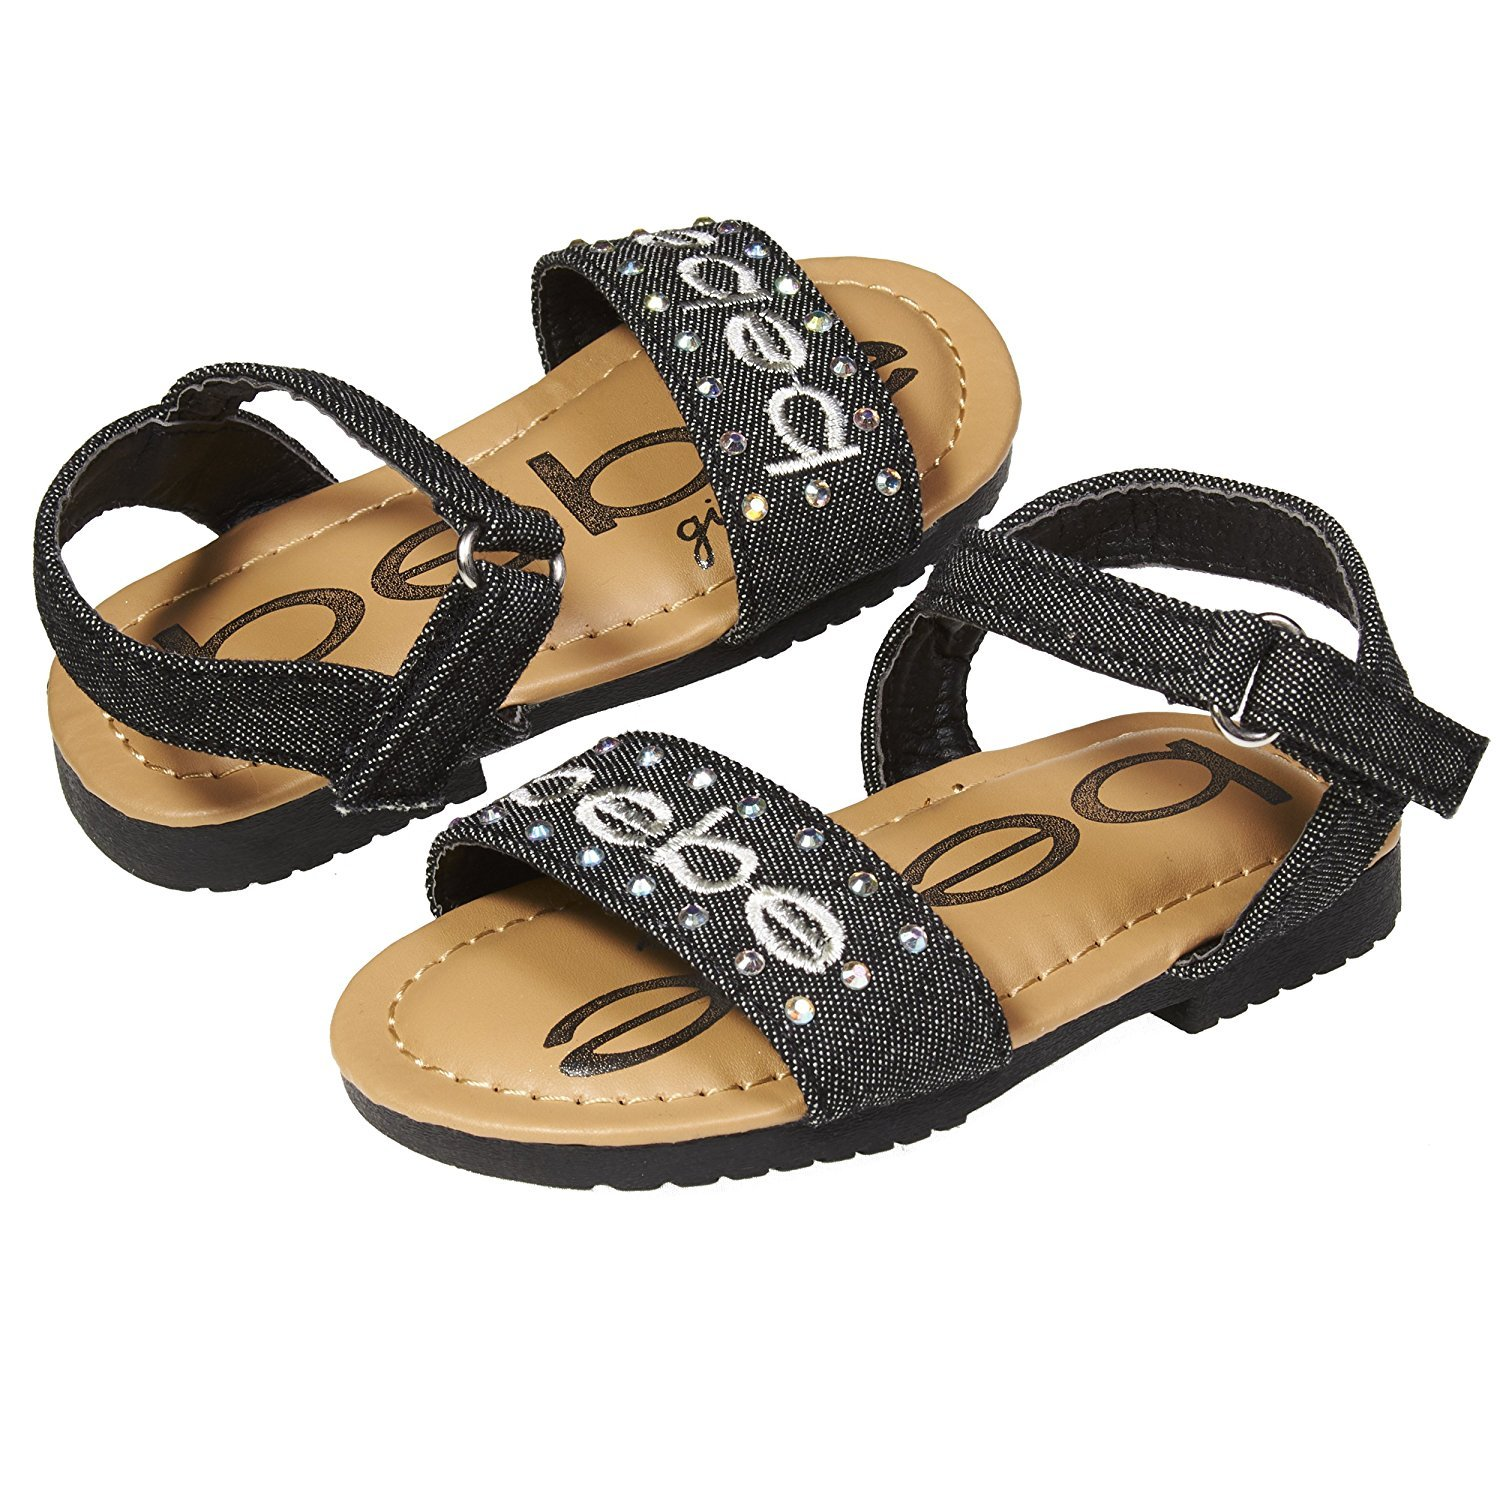 Cool Summer Stylish Girl/'s Shoes Metallic Color Strappy Sandal Toddler size